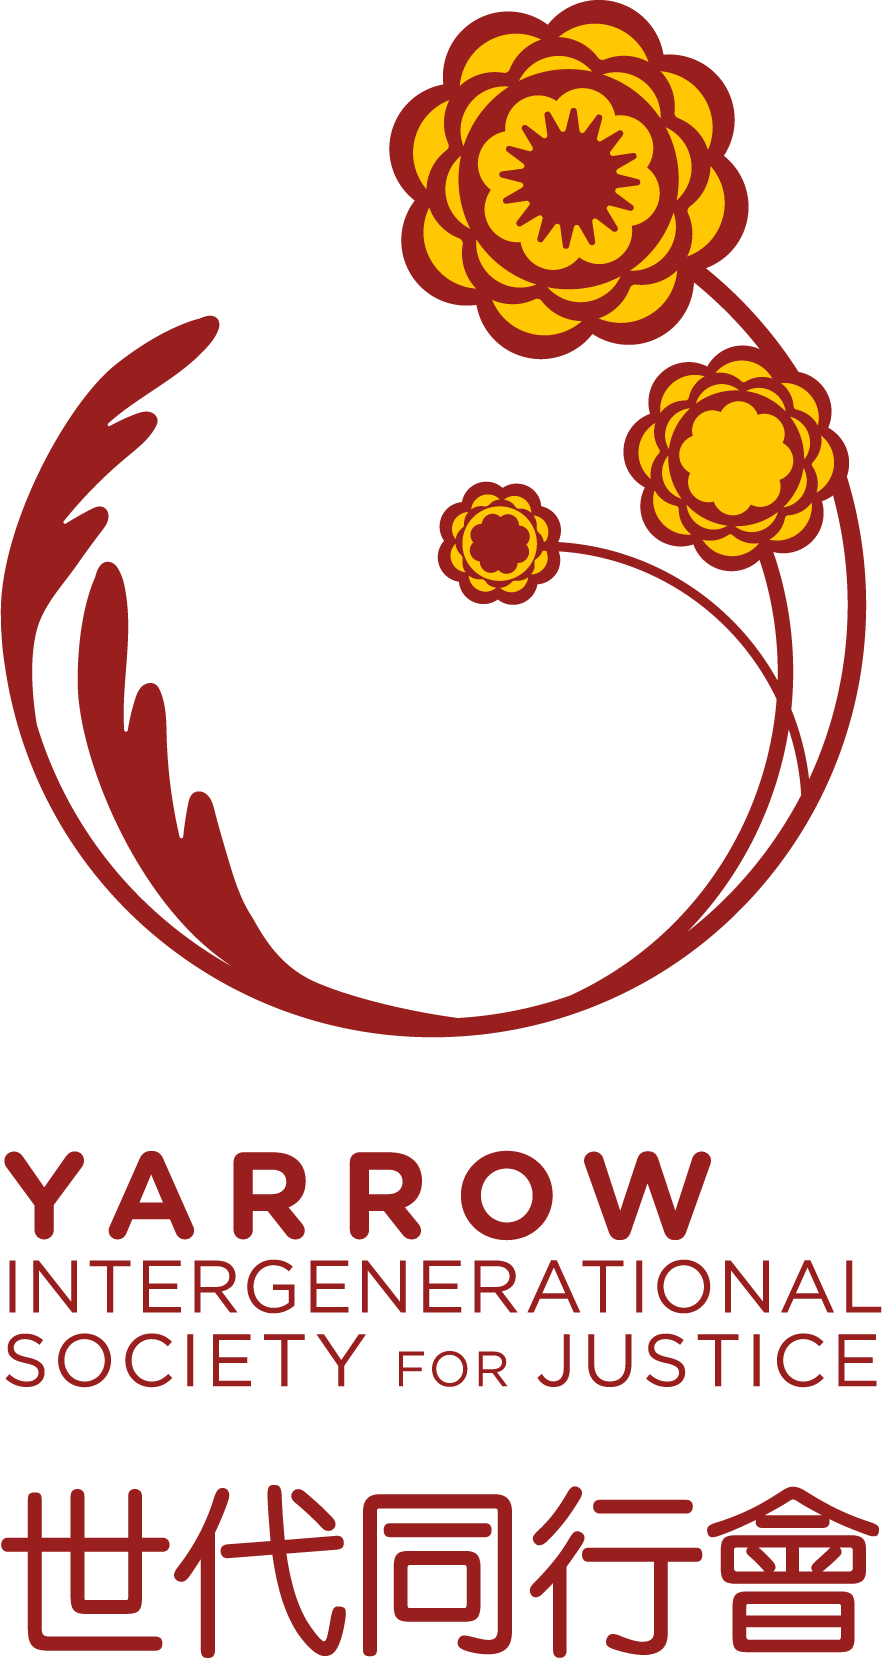 Yarrow Intergenerational Society for Justice